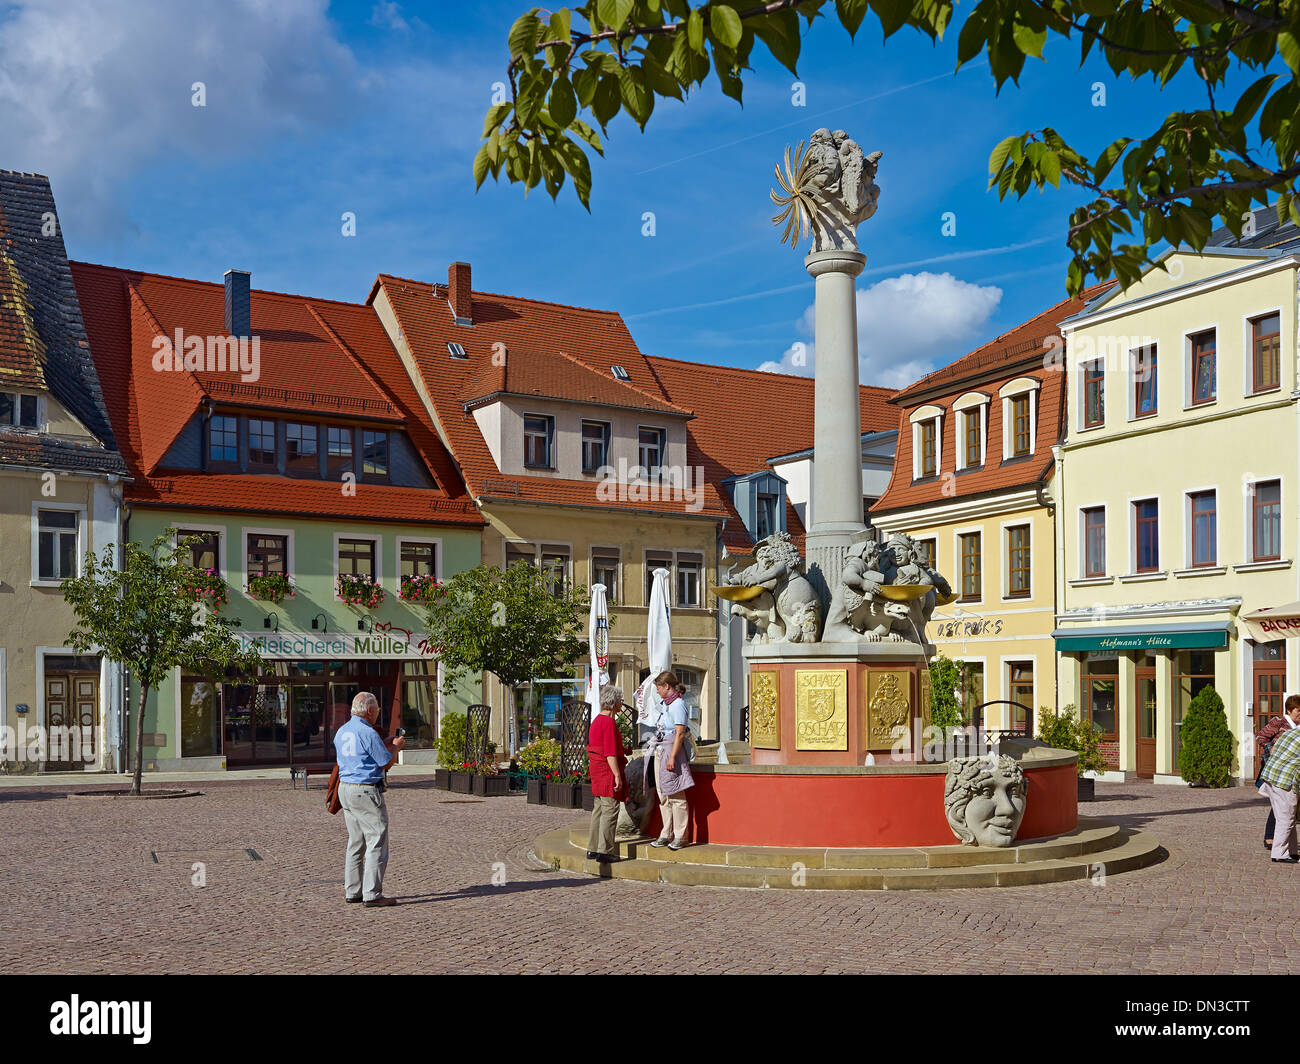 Altmarkt Square with a new fountain in Oschatz, Nordsachsen District, Saxony, Germany Stock Photo